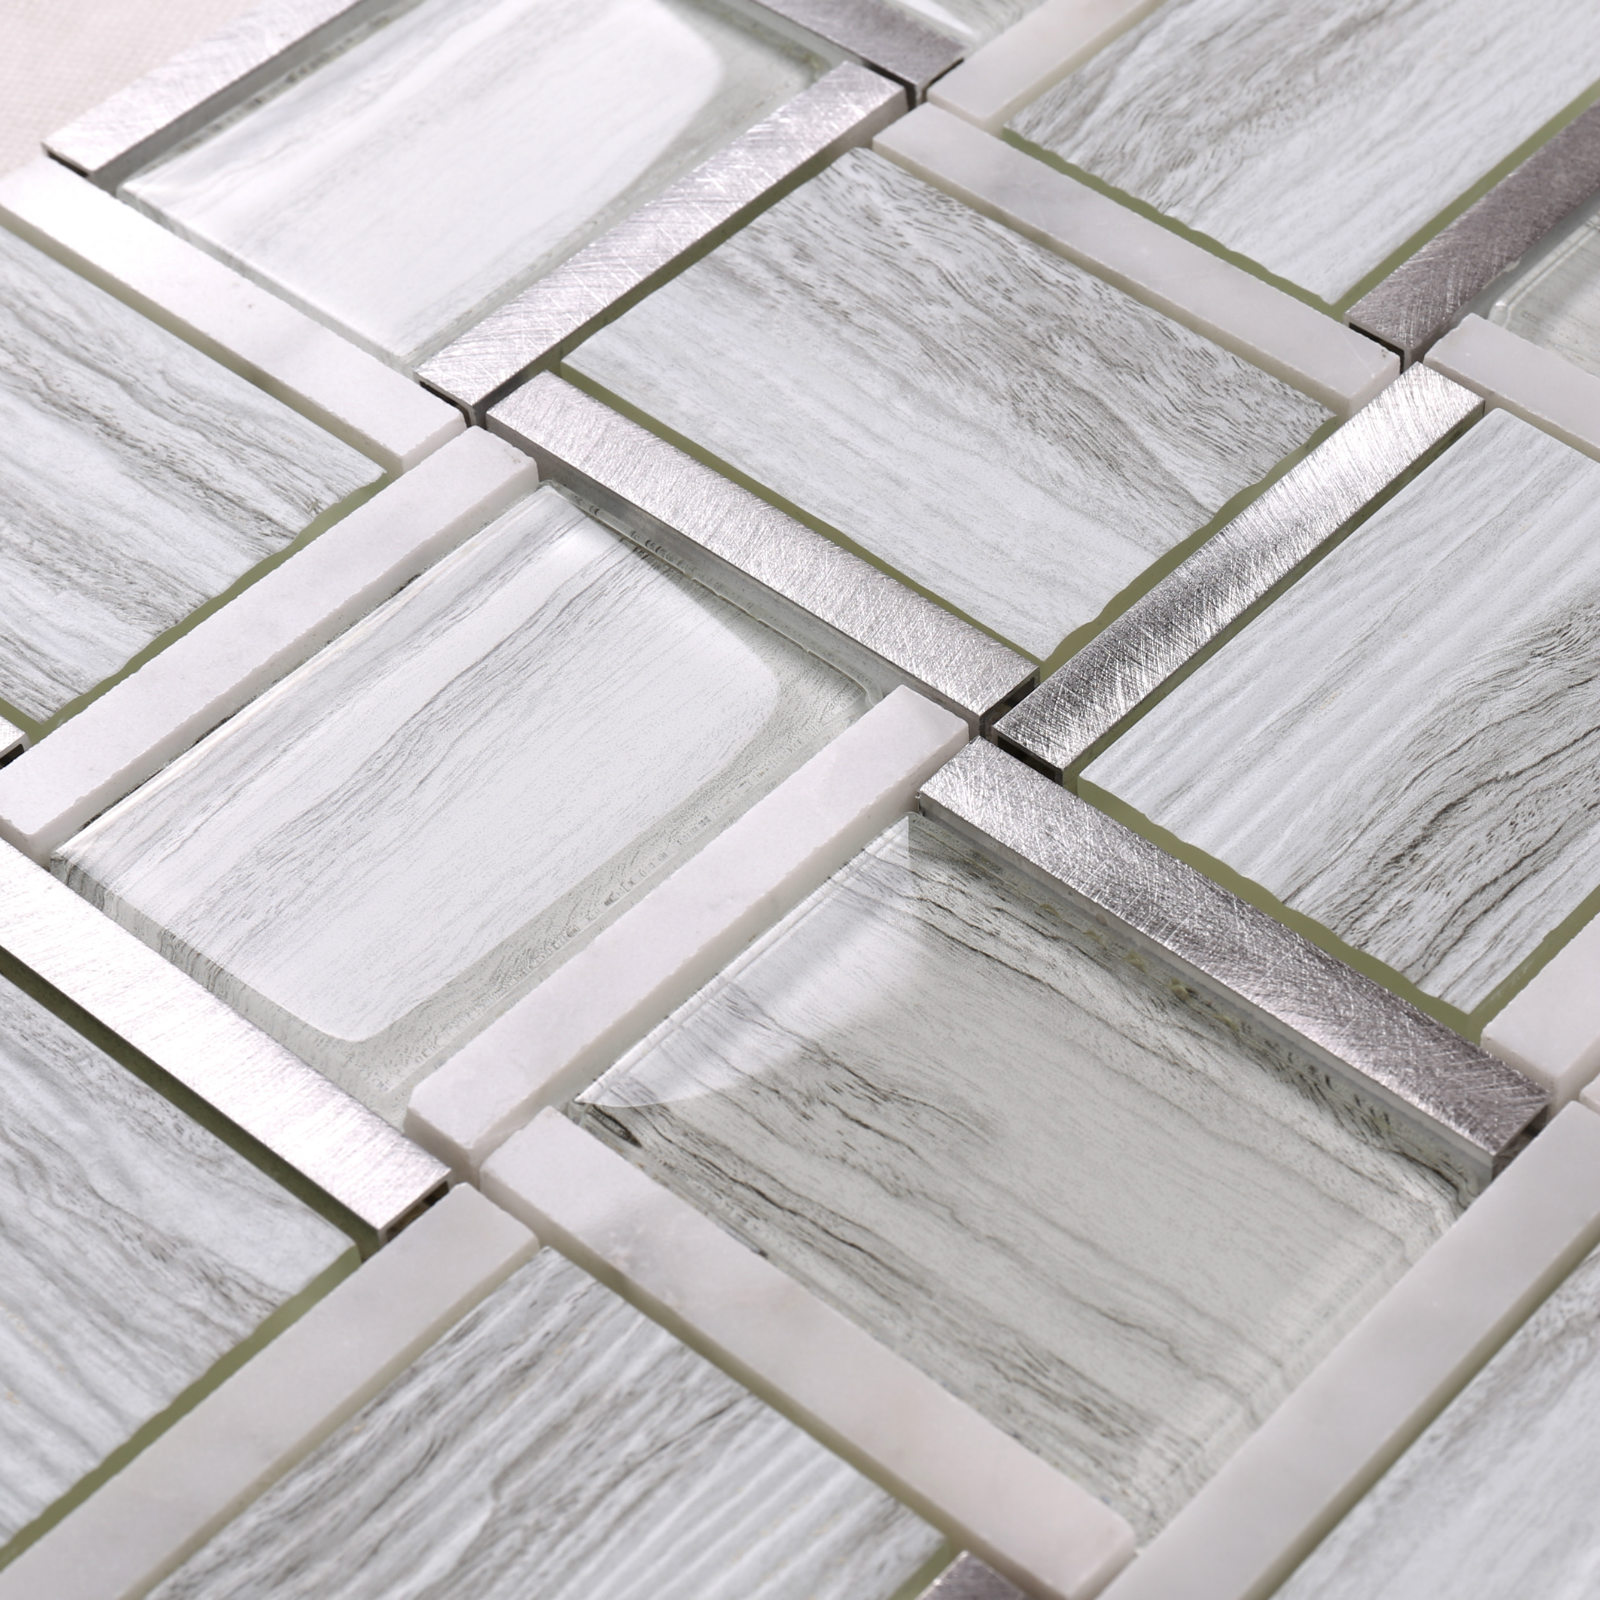 news-Heng Xing beveled bevel tile supplier for kitchen-Heng Xing-img